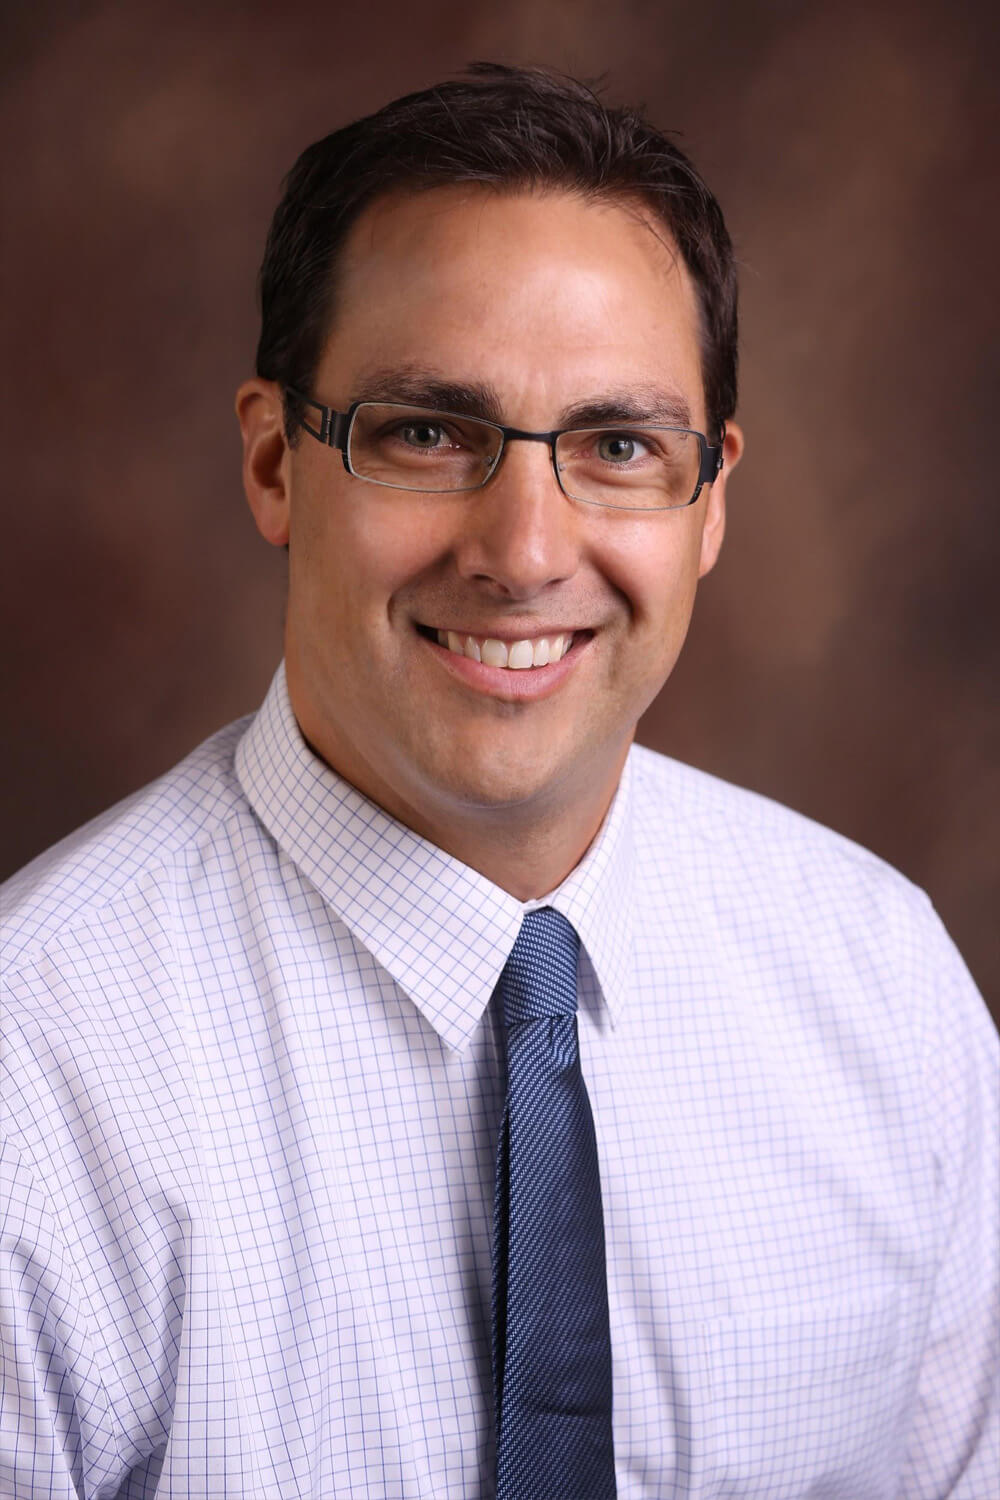 Jamison C. Jones, MD, FACC, one of our vascular doctors in Cedar City UT